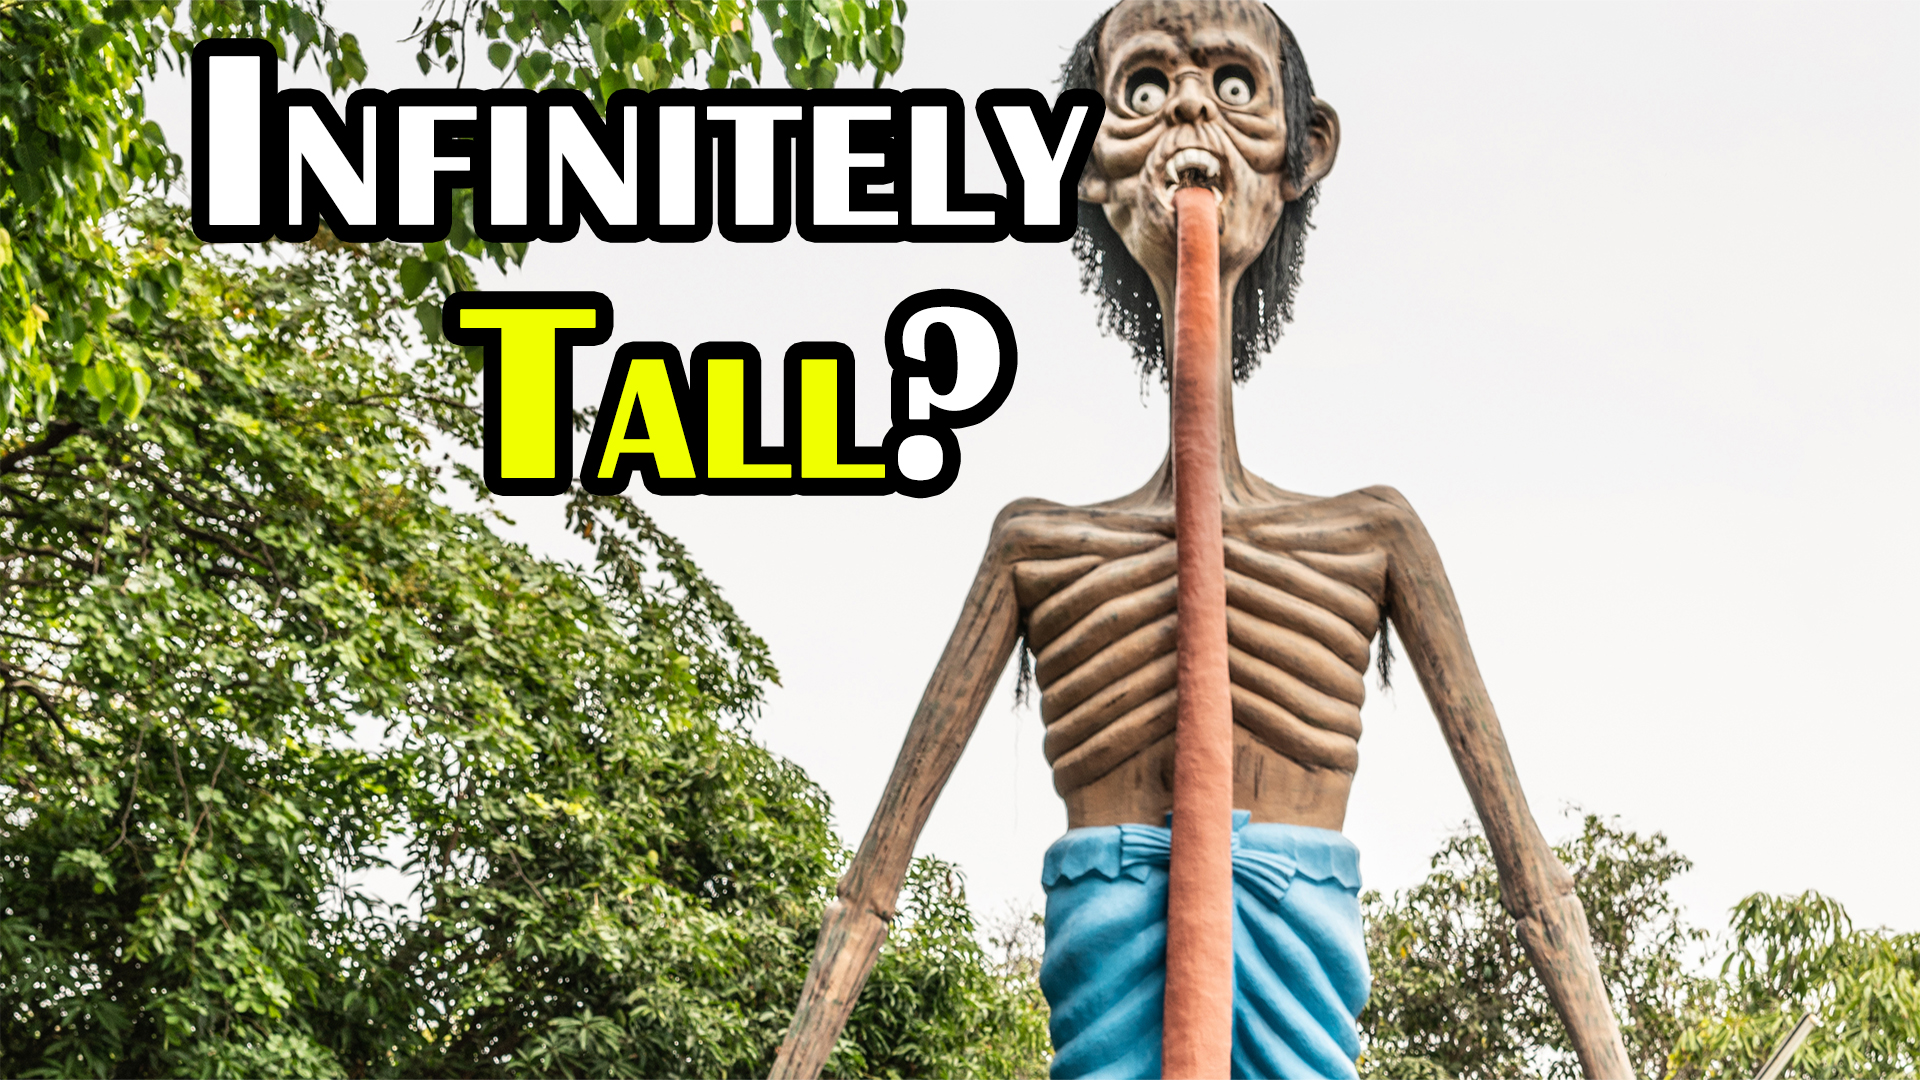 Why Don't You Just Keep Growing Taller?